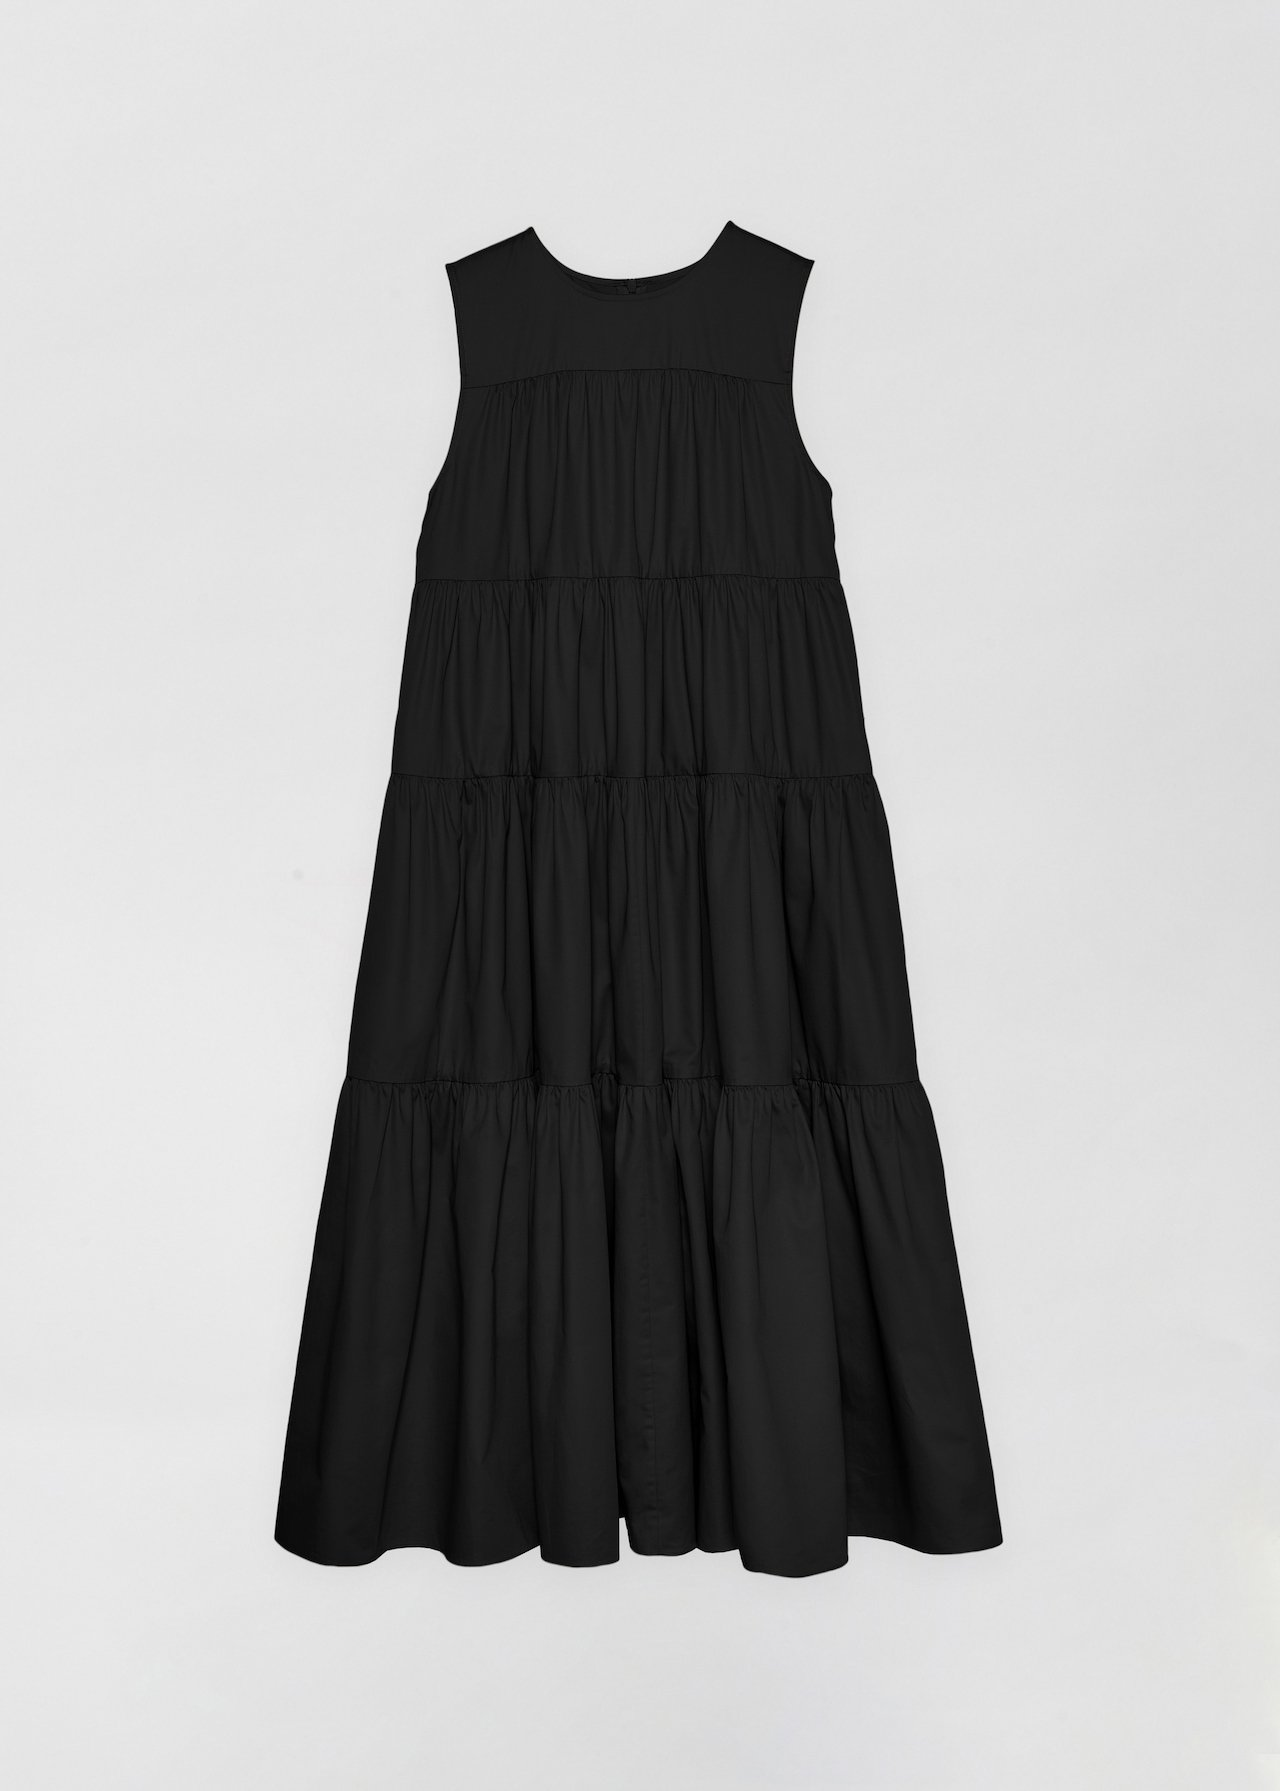 Sleeveless Tiered Dress - White in Black by Co Collections